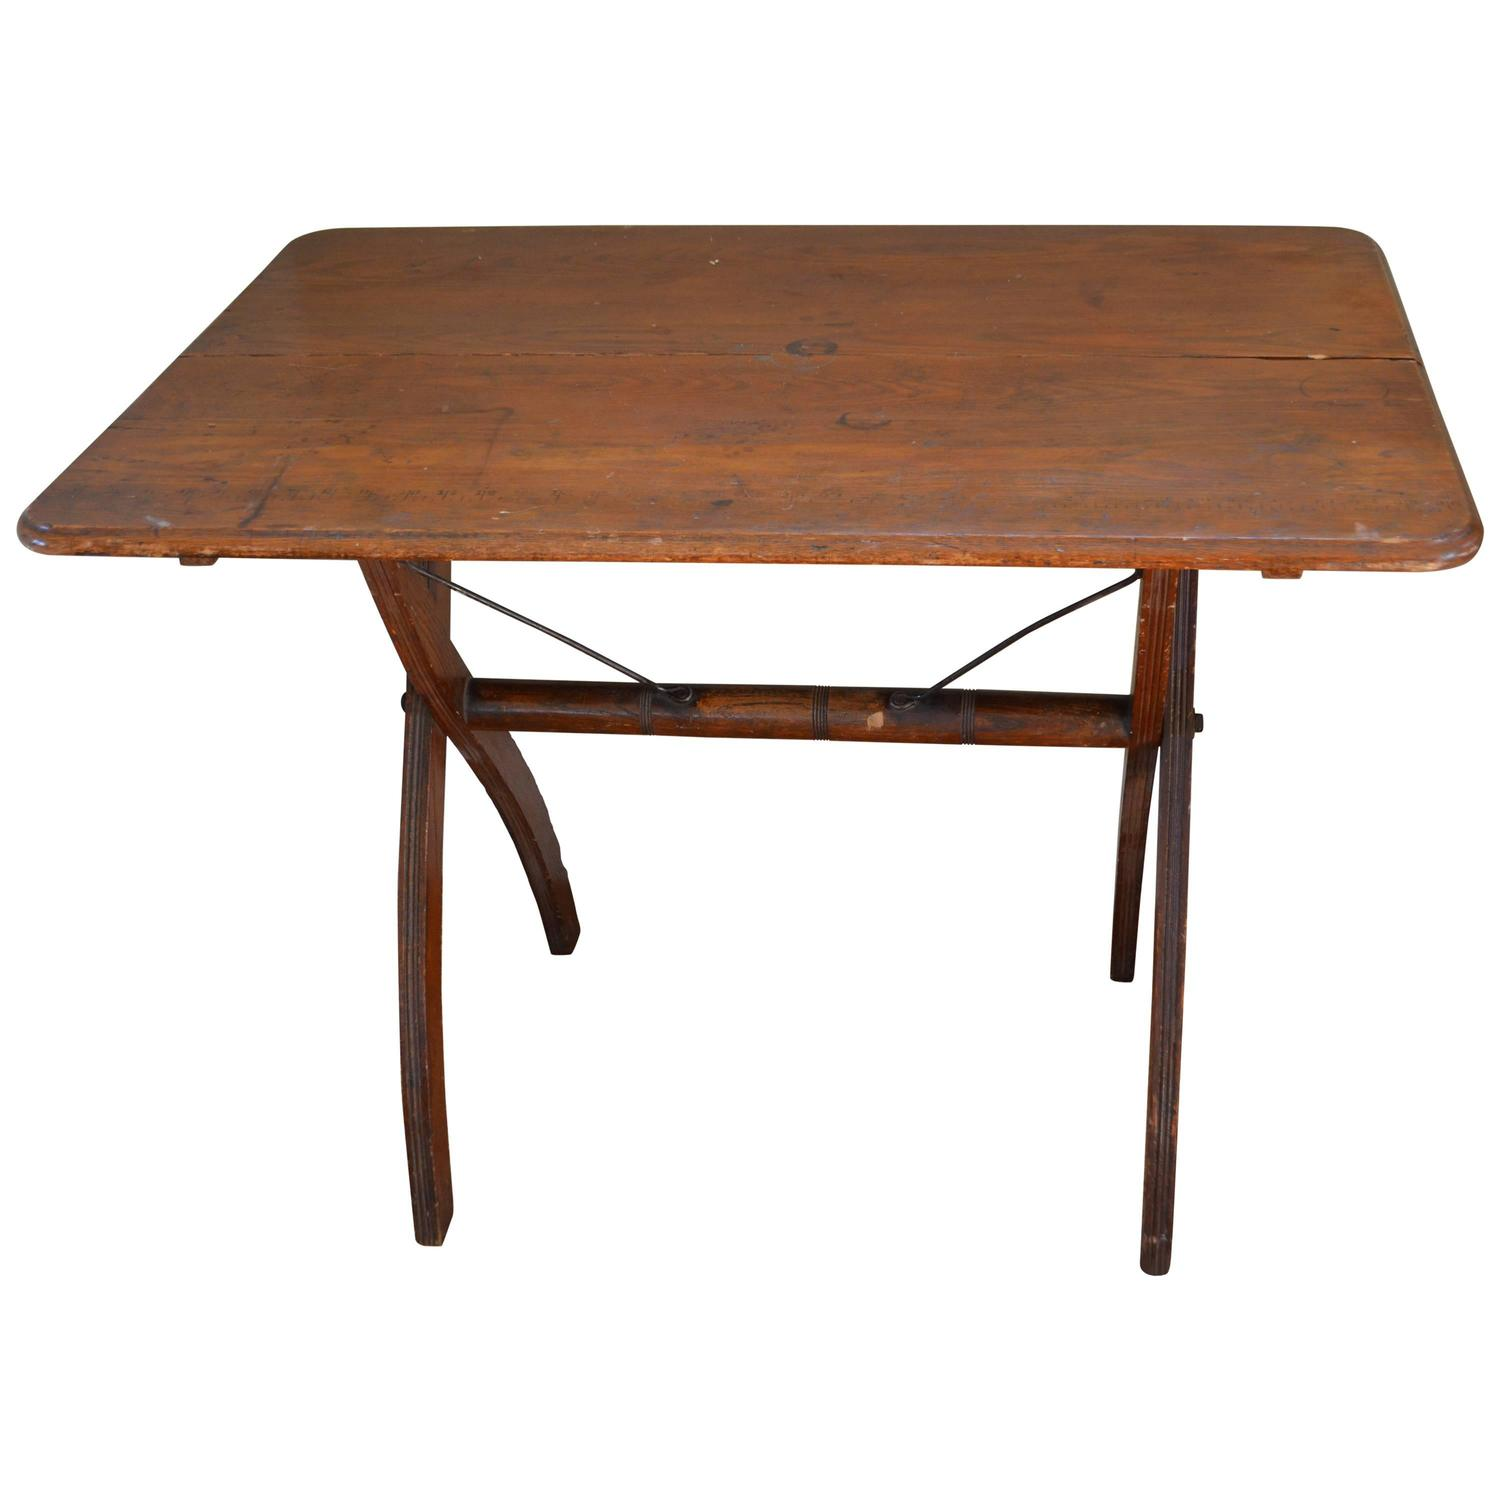 wooden sewing folding table early 1900s for sale at 1stdibs. Black Bedroom Furniture Sets. Home Design Ideas